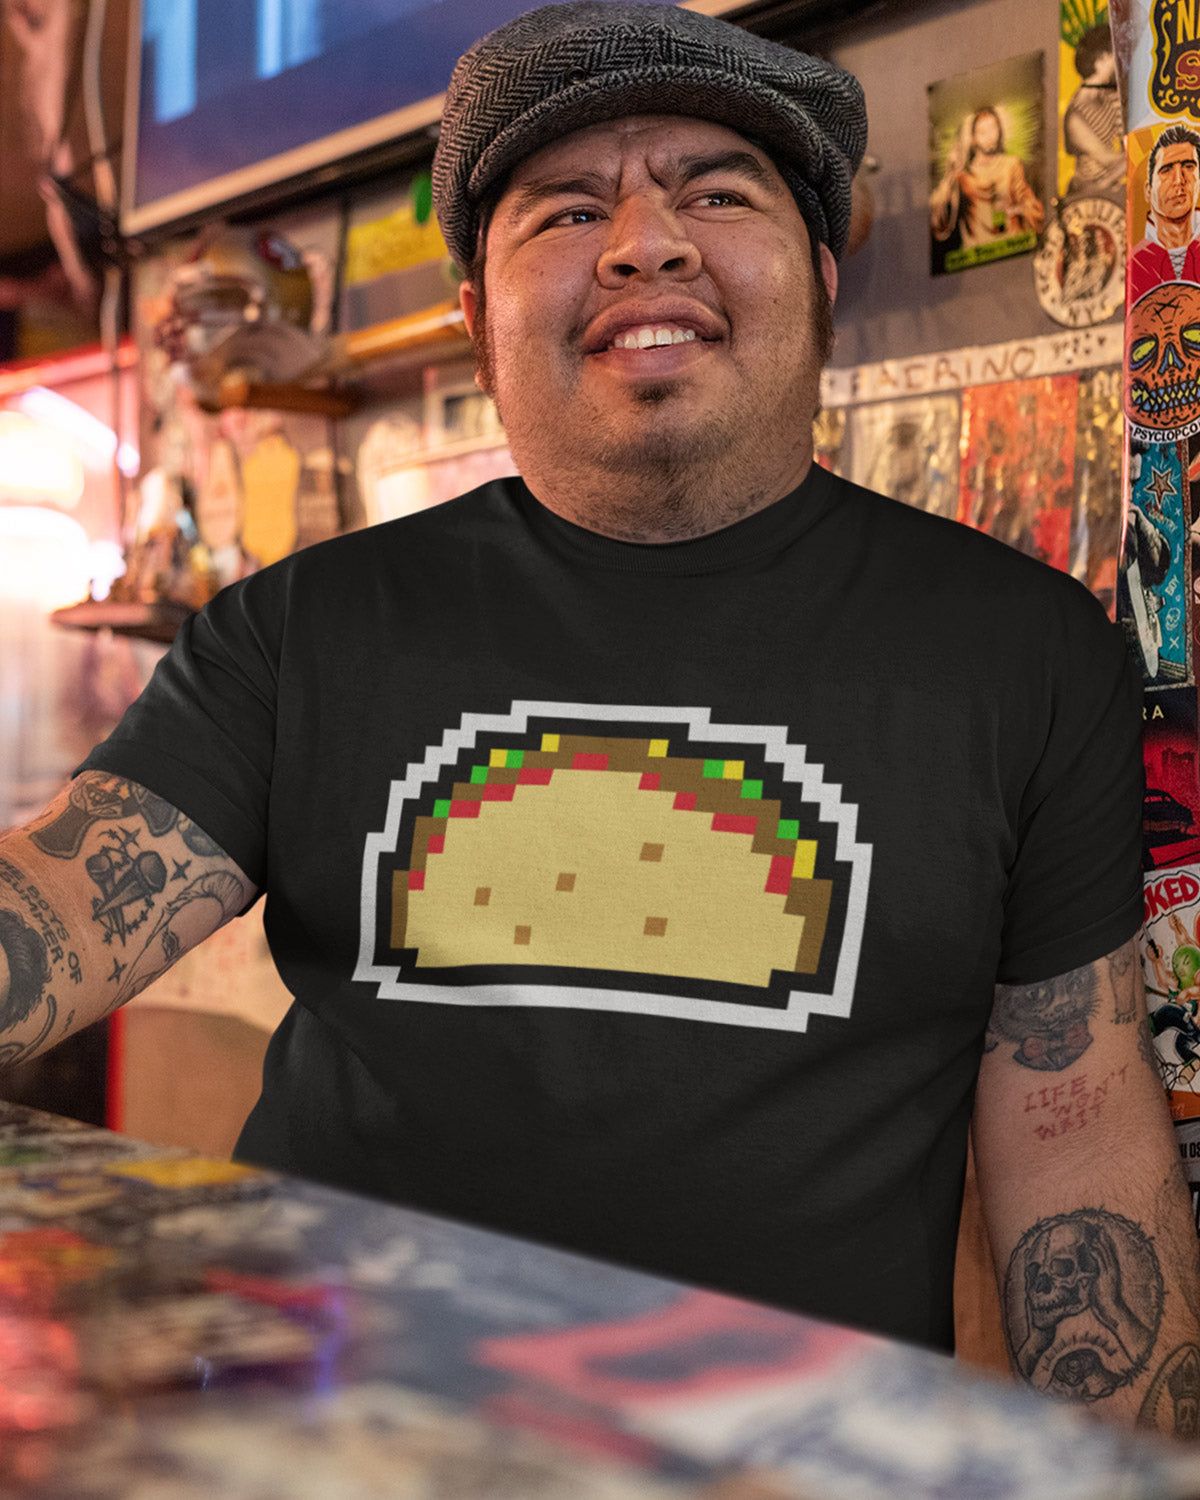 8 bit design black taco shirt from taco gear